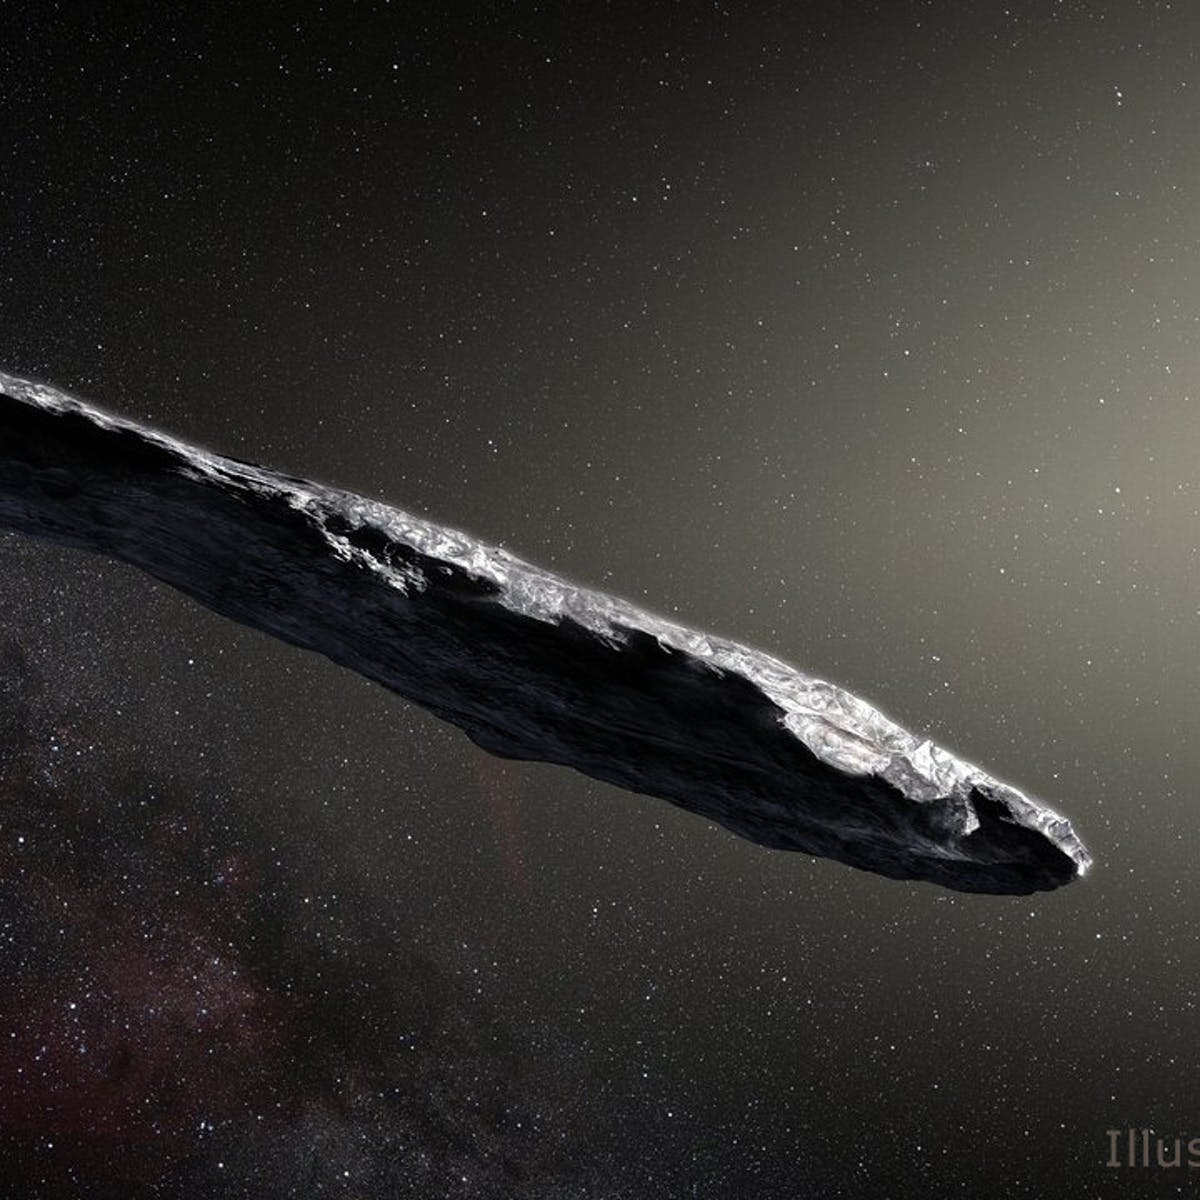 NASA Video Shows Oumuamua, Which Harvard Prof Suggests May Be Alien Probe